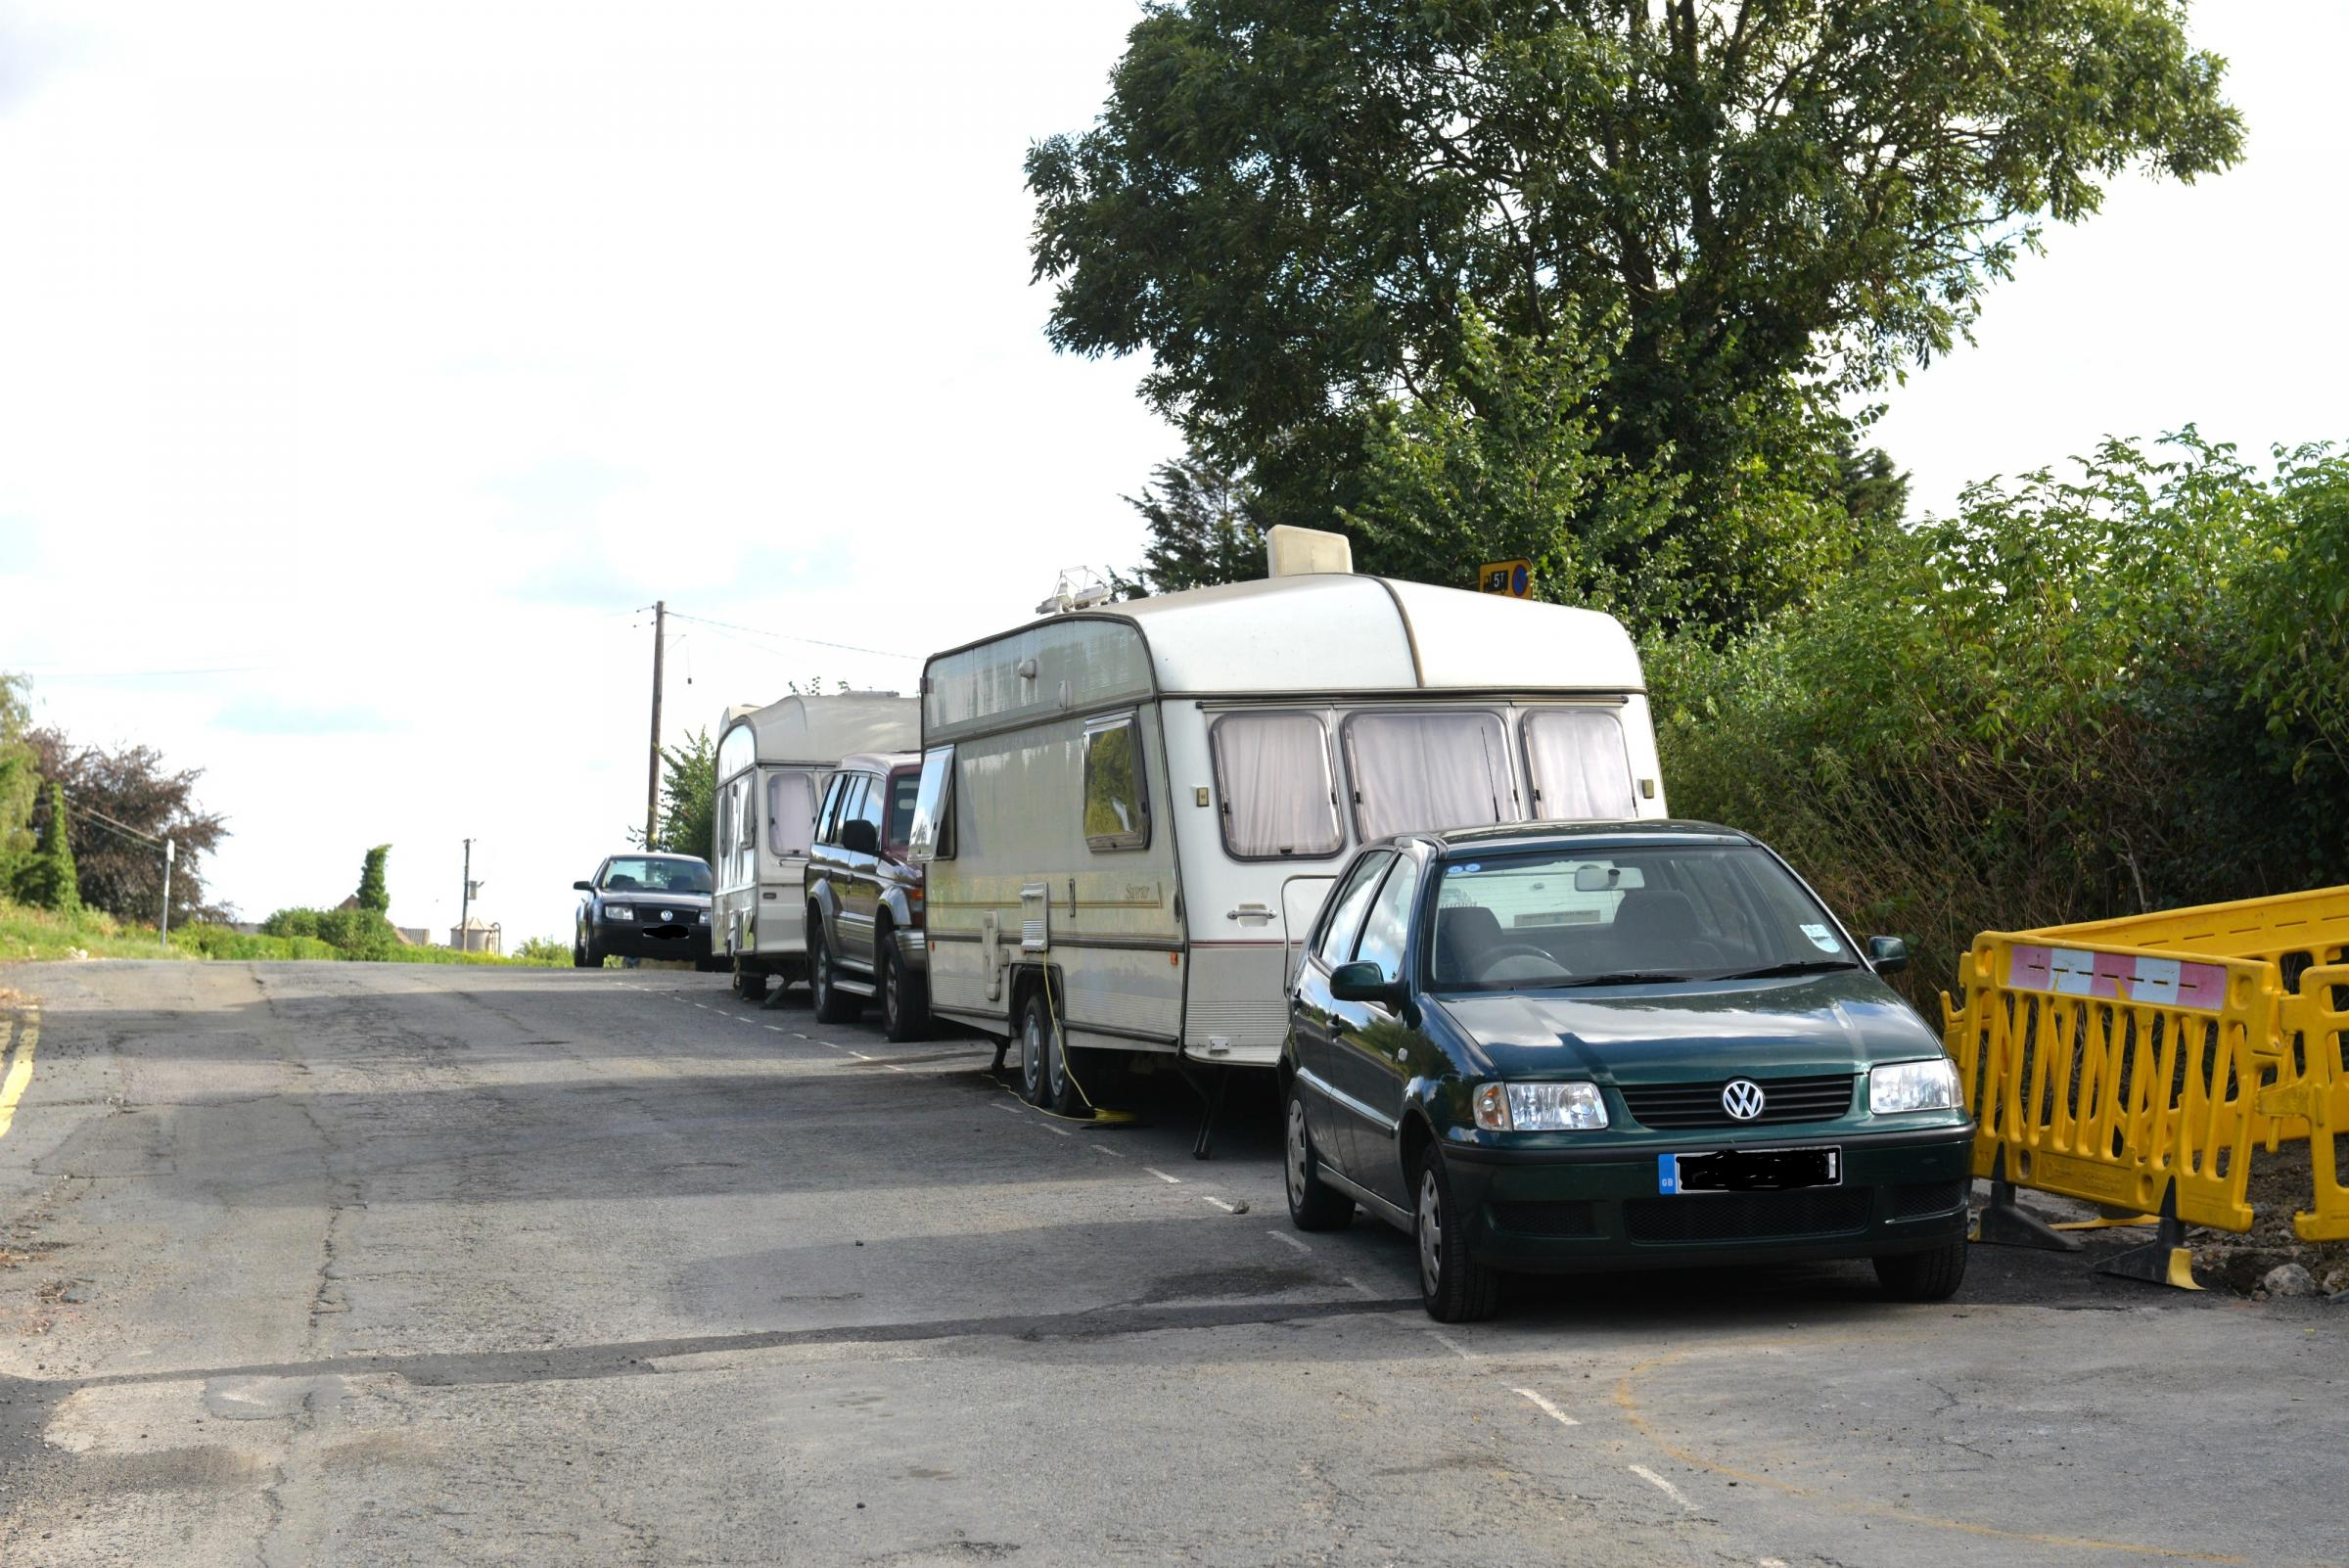 Cambridge residents frustrated by long-running caravan saga